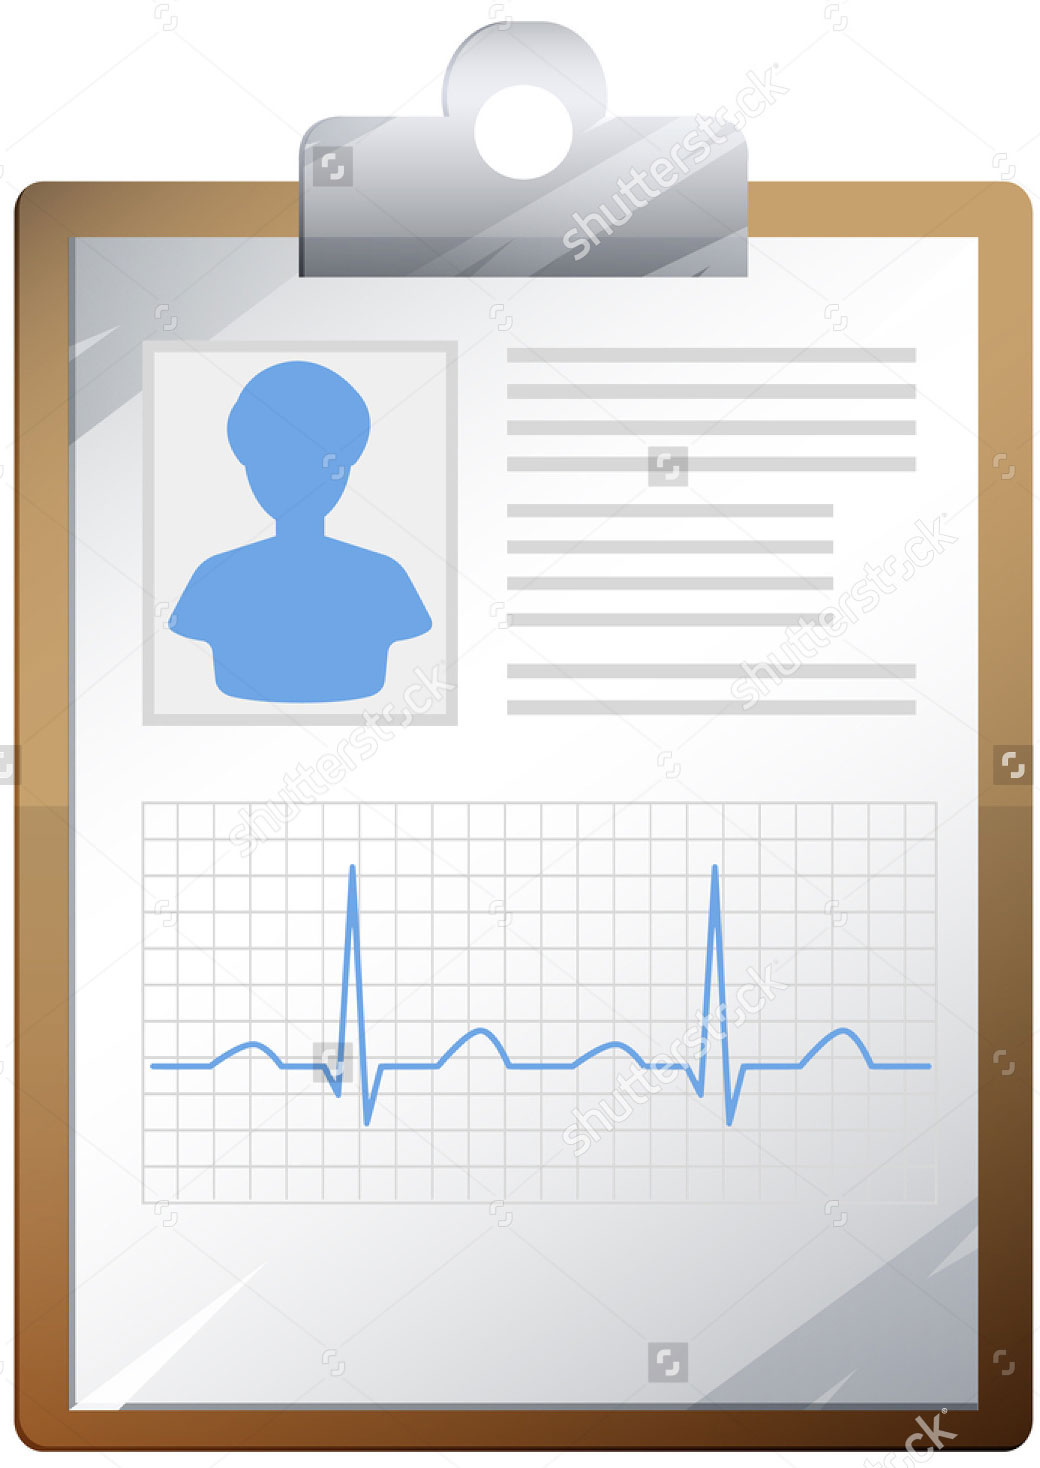 Sample Letter Requesting Medical Records Of Deceased Parent from www.myhealth.gov.my